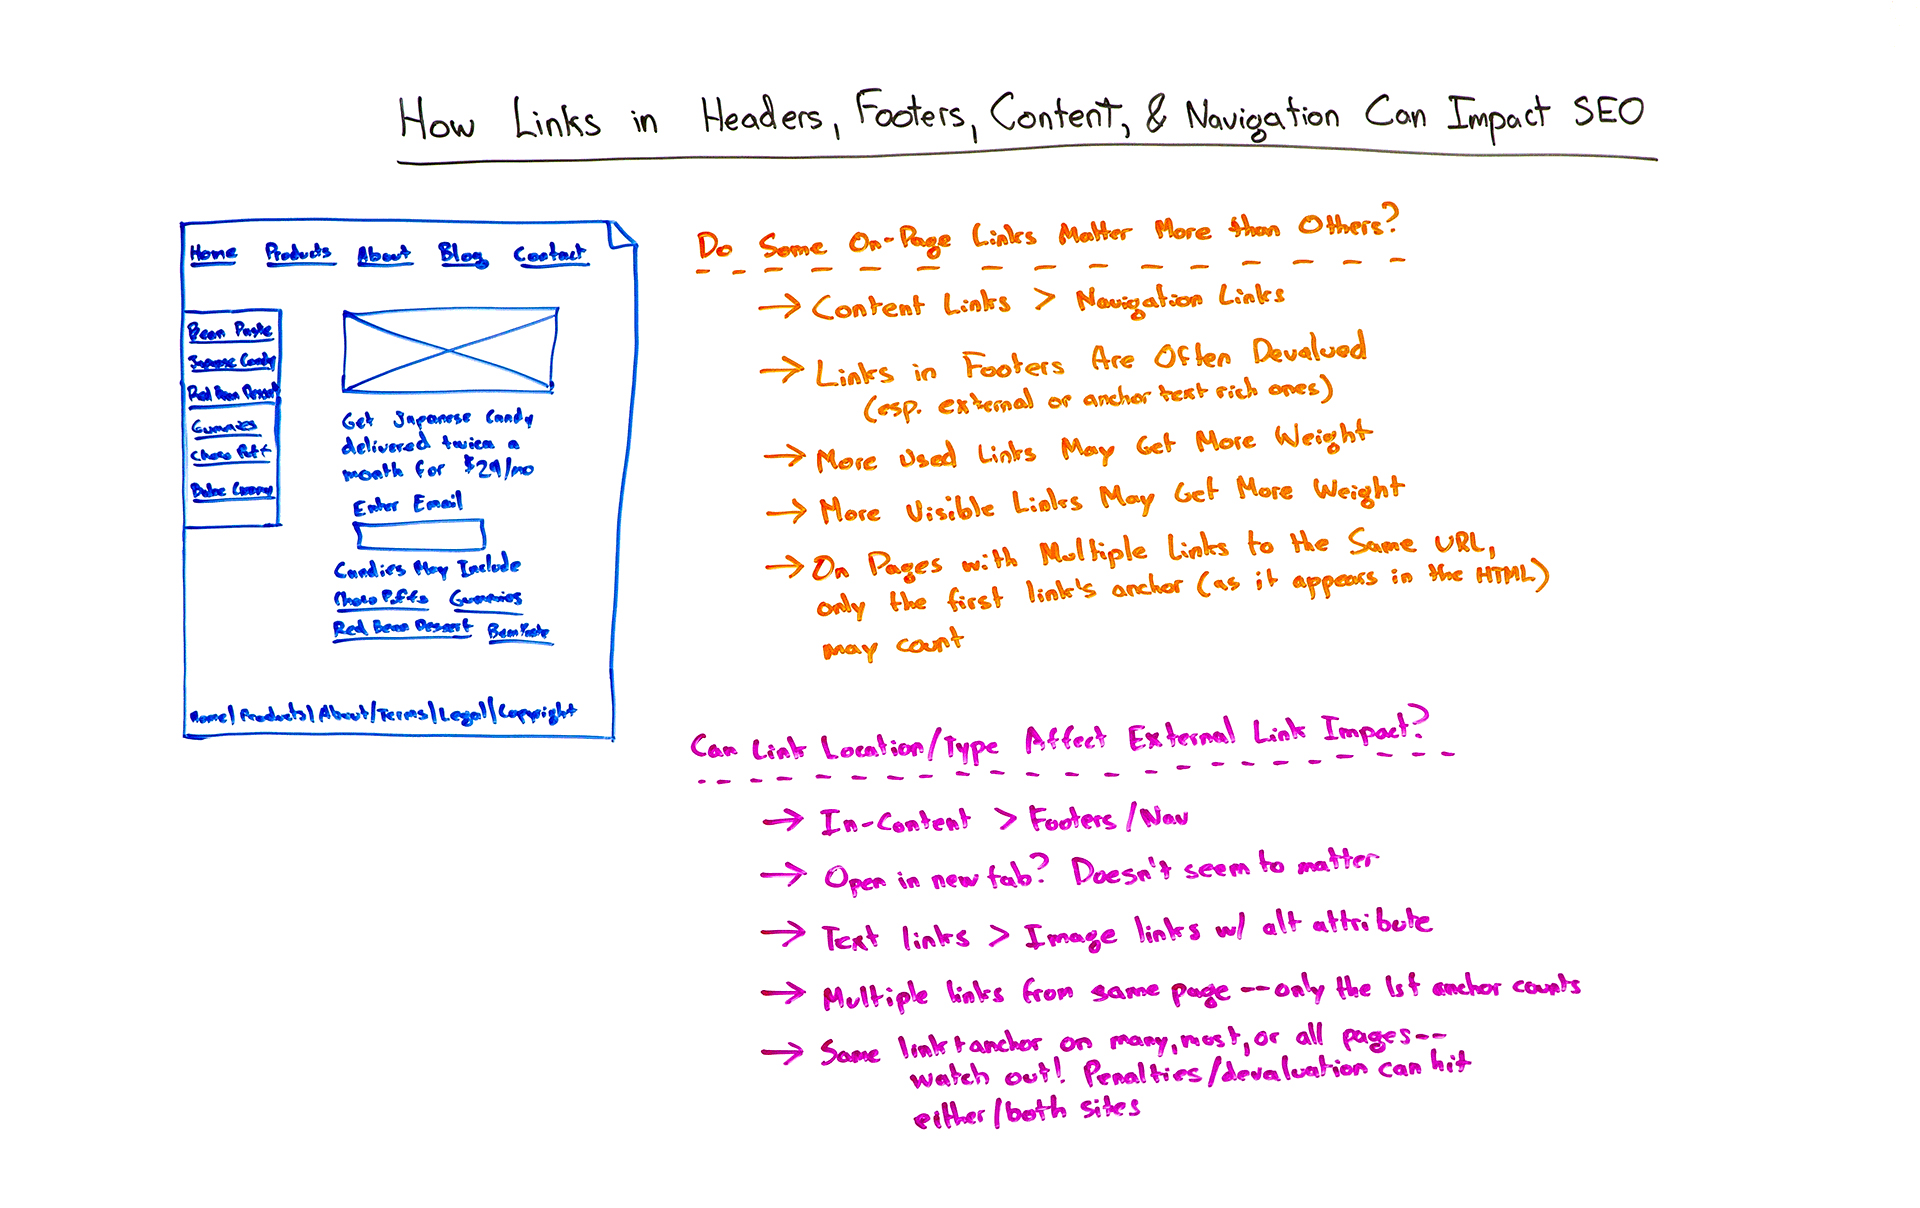 How Links in Headers, Footers, Content, and Navigation Can